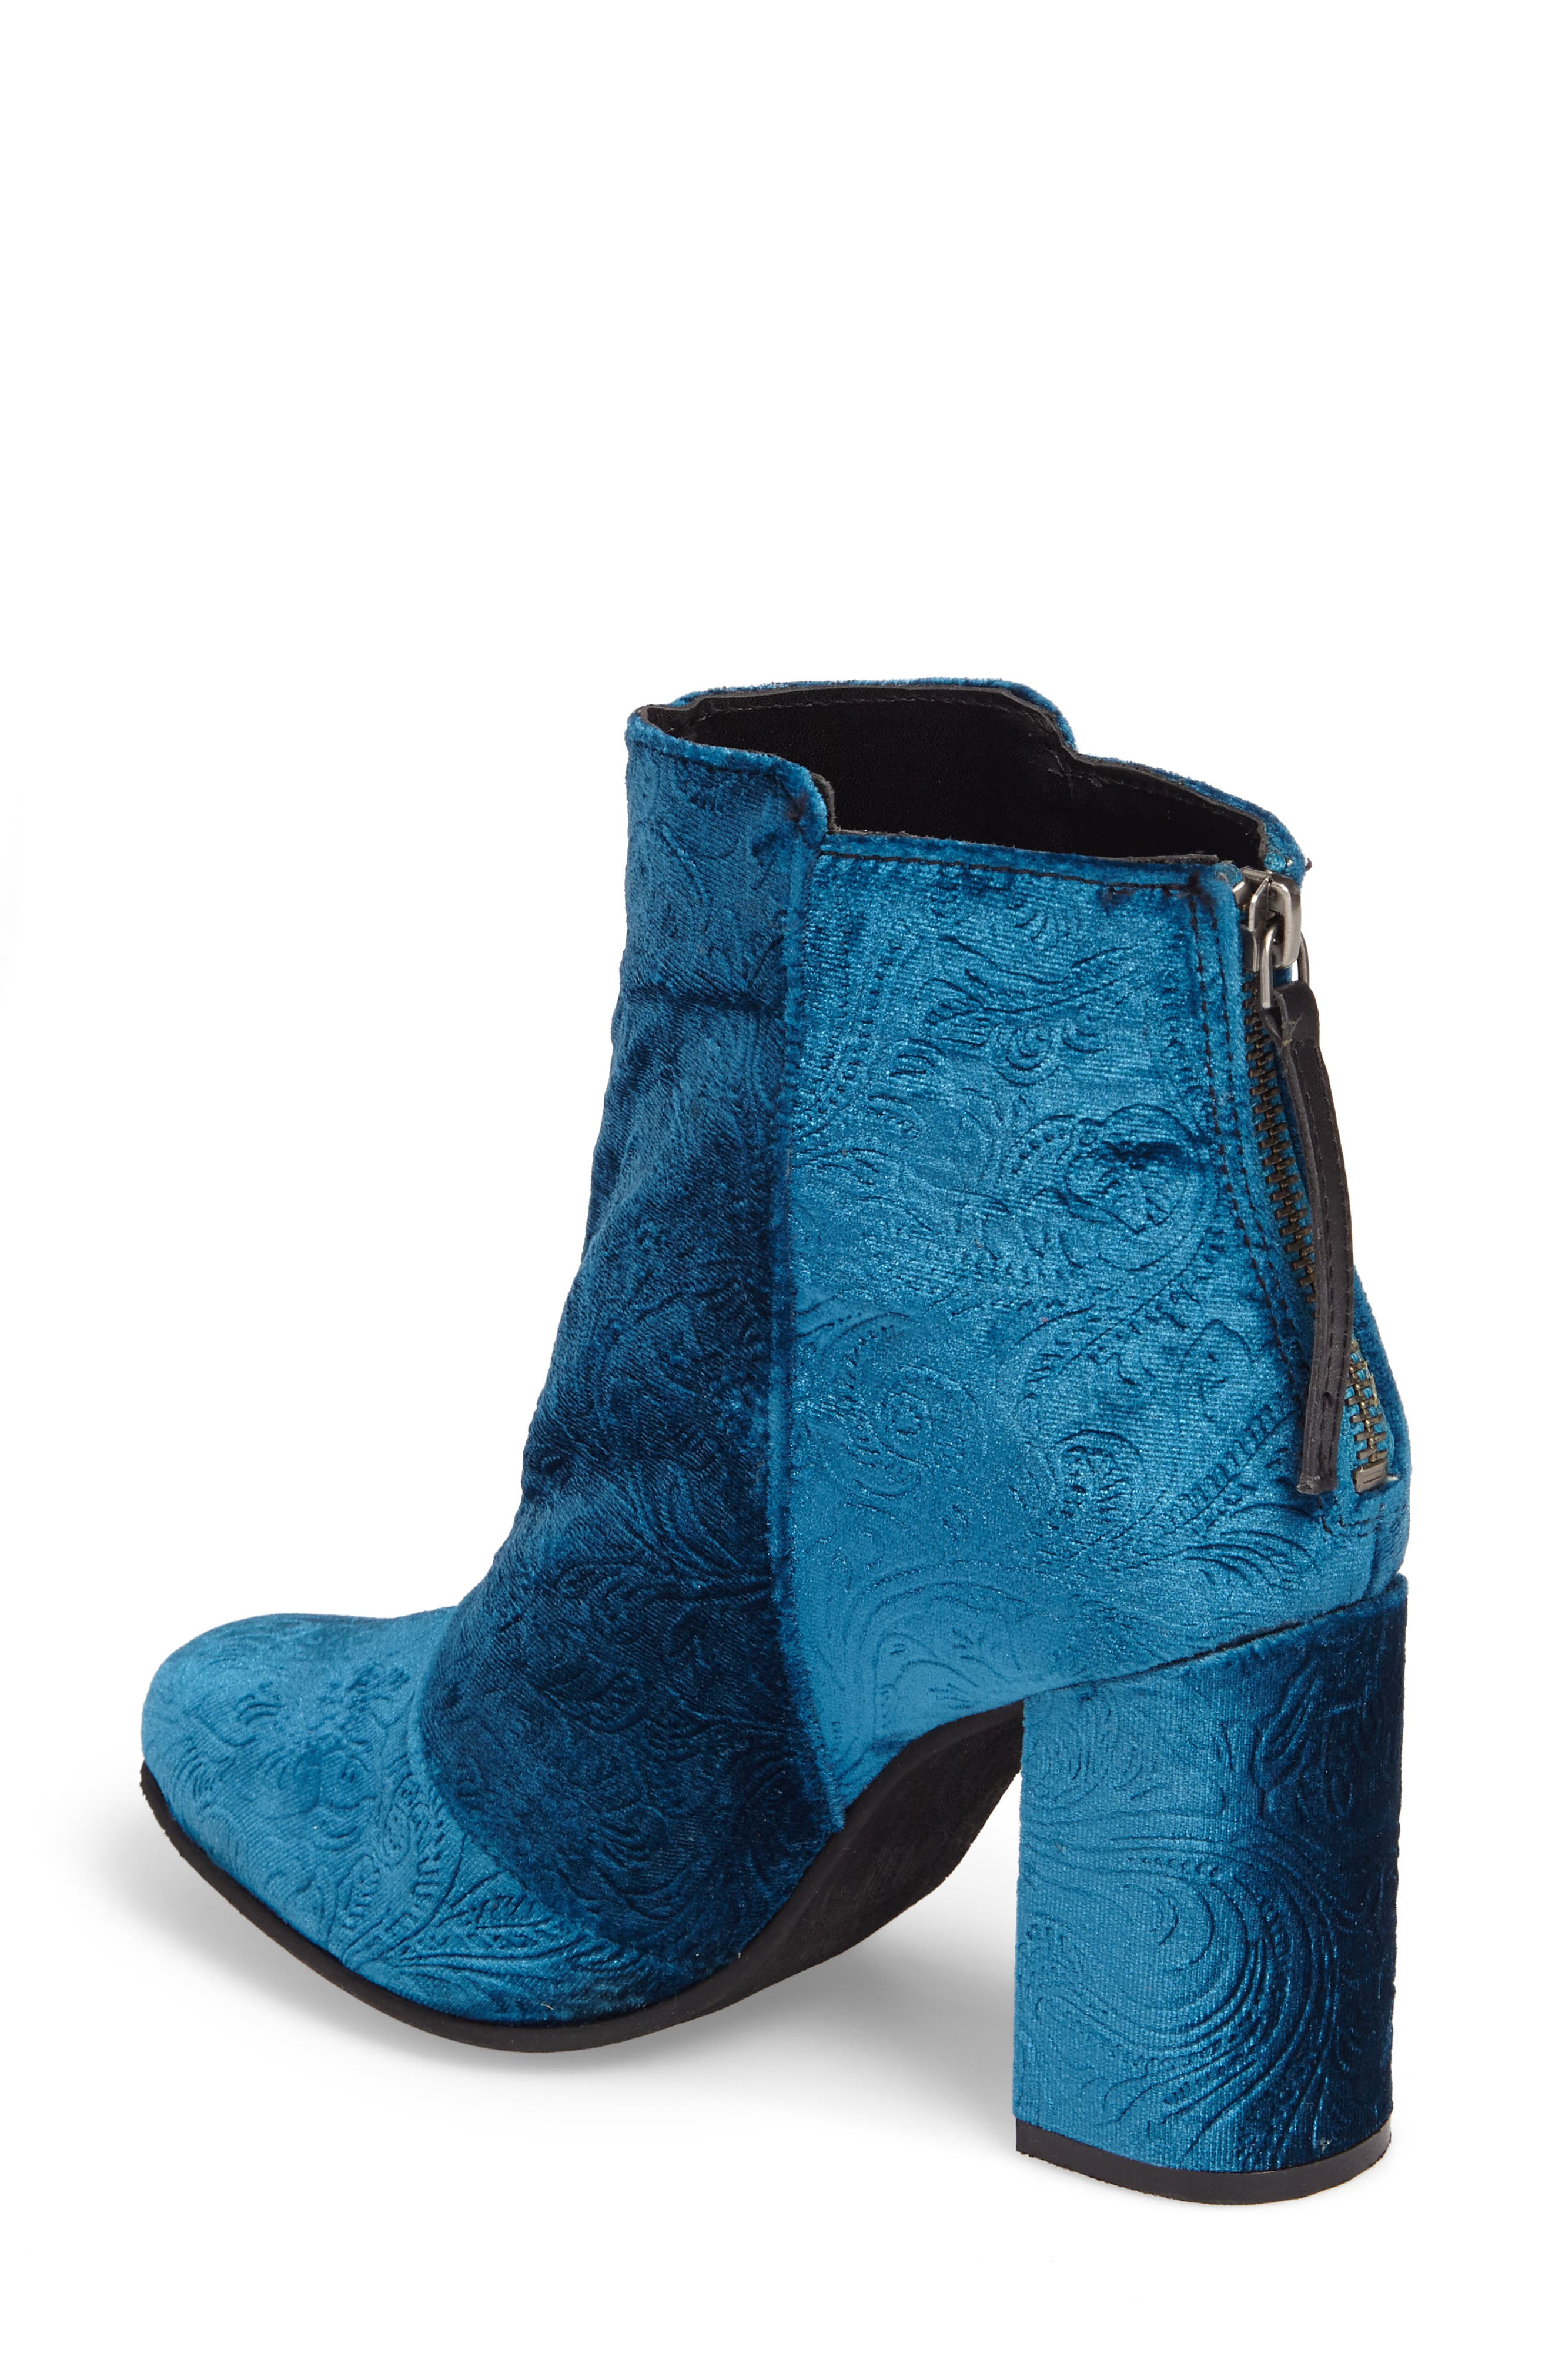 Nadonna Bootie,                             Alternate thumbnail 2, color,                             Teal Fabric